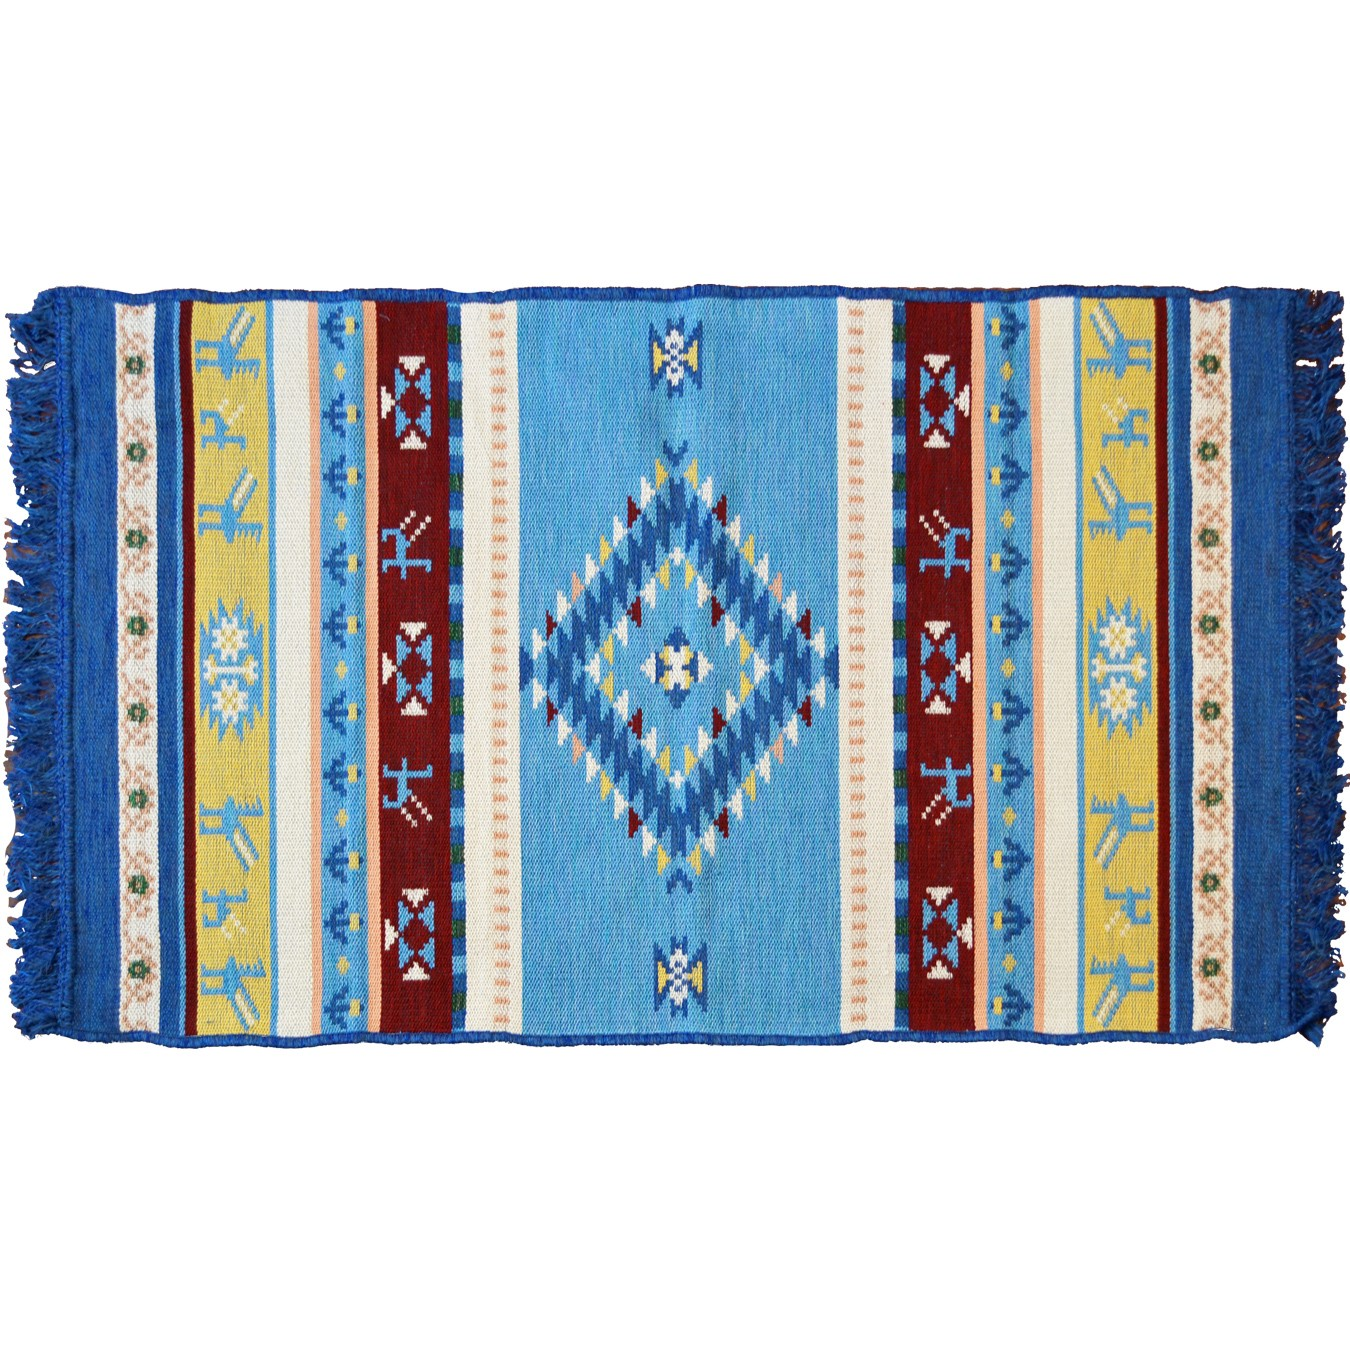 Omfalos Ethnic Rug, Light Blue & Multi